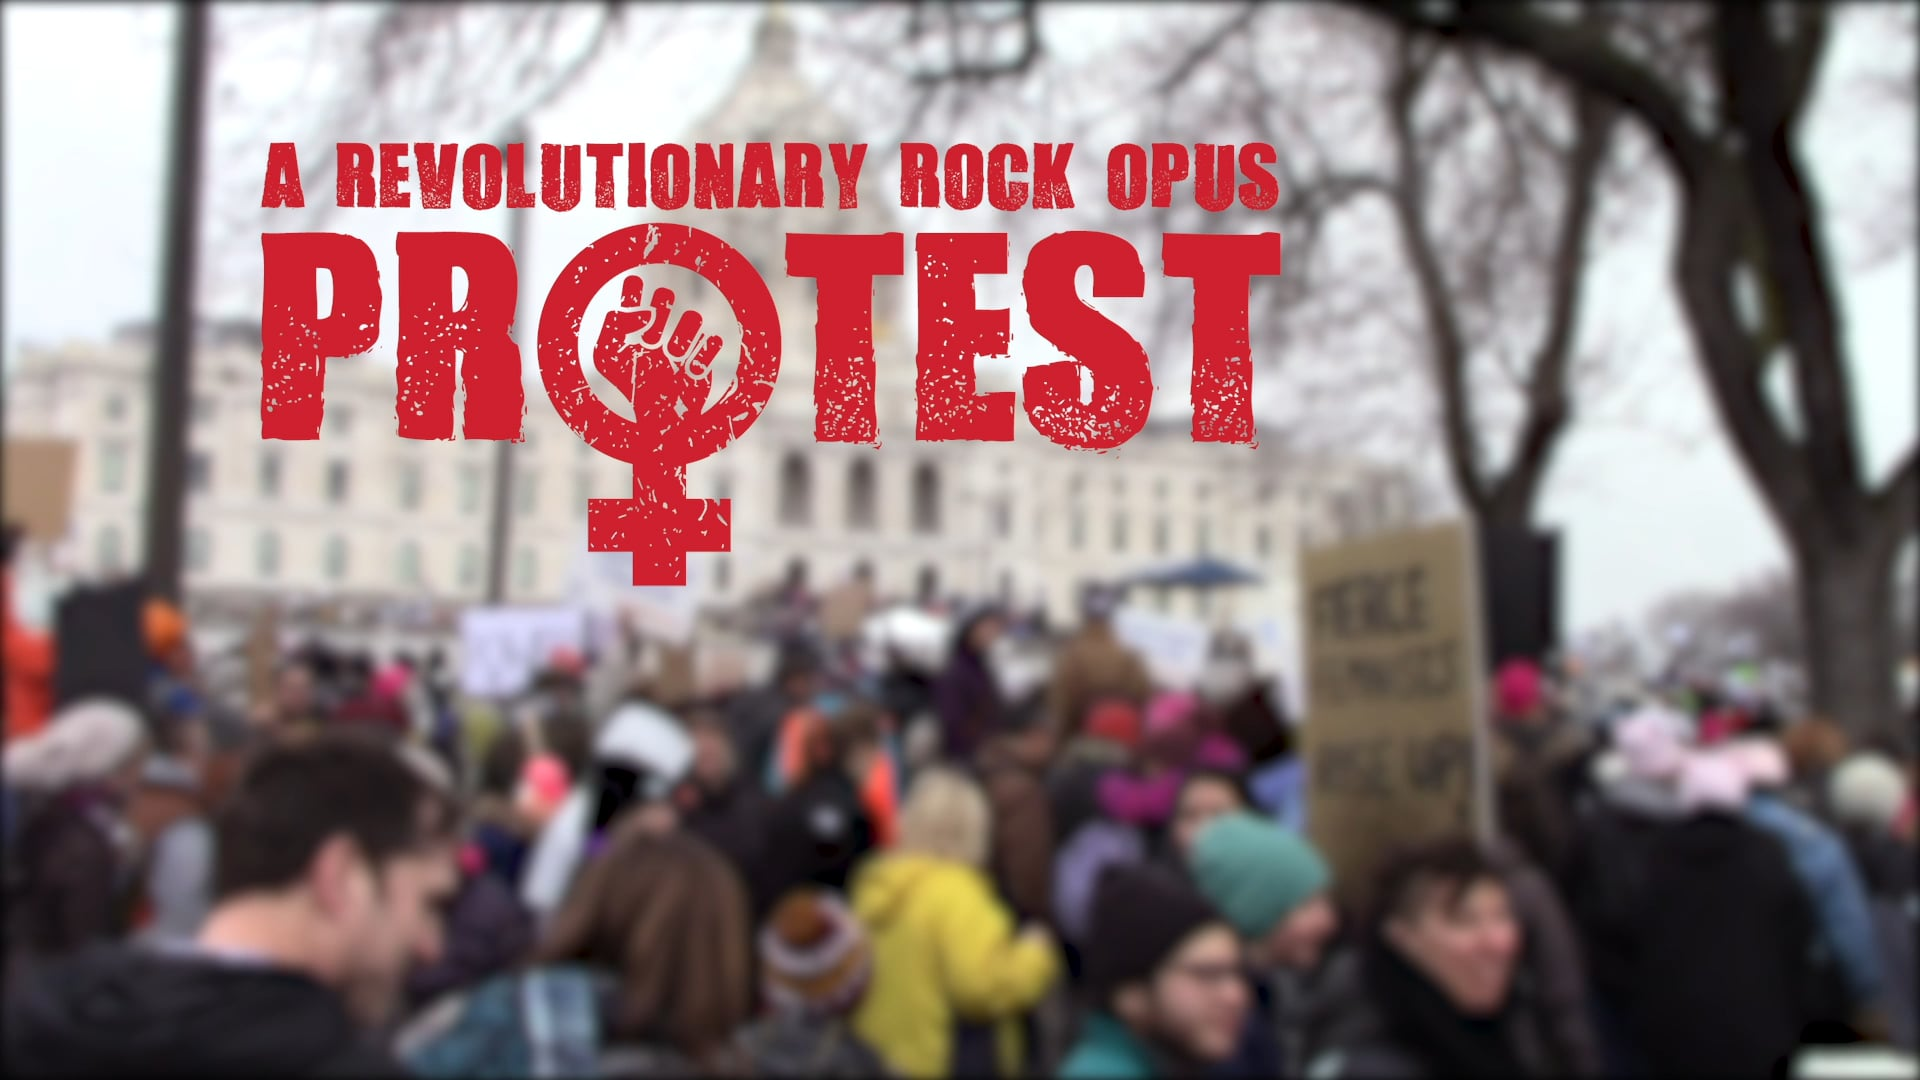 """""""We Are One"""" Ashley DuBose from PROTEST: A Revolutionary Rock Opus"""